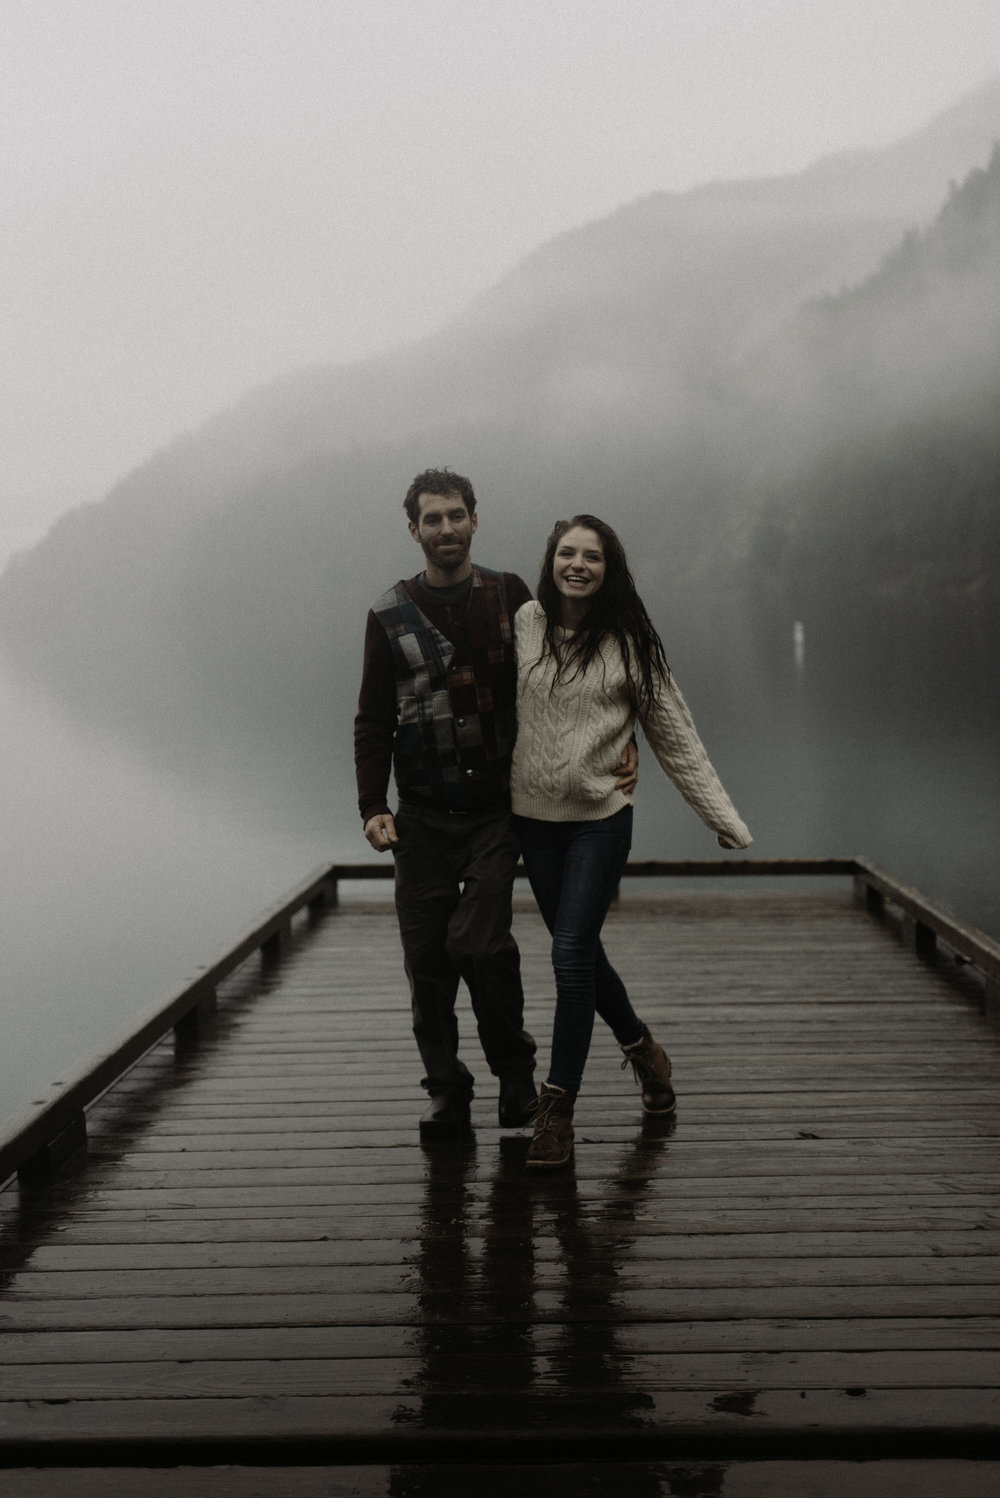 Rainy Olympic Coast Engagements , Lake Crescent Engagements , Olympic Peninsula , Jessica Heron Images, Rainy Engagements , Northwest Photographer jessicaheronimages.com:blog 1052.JPG